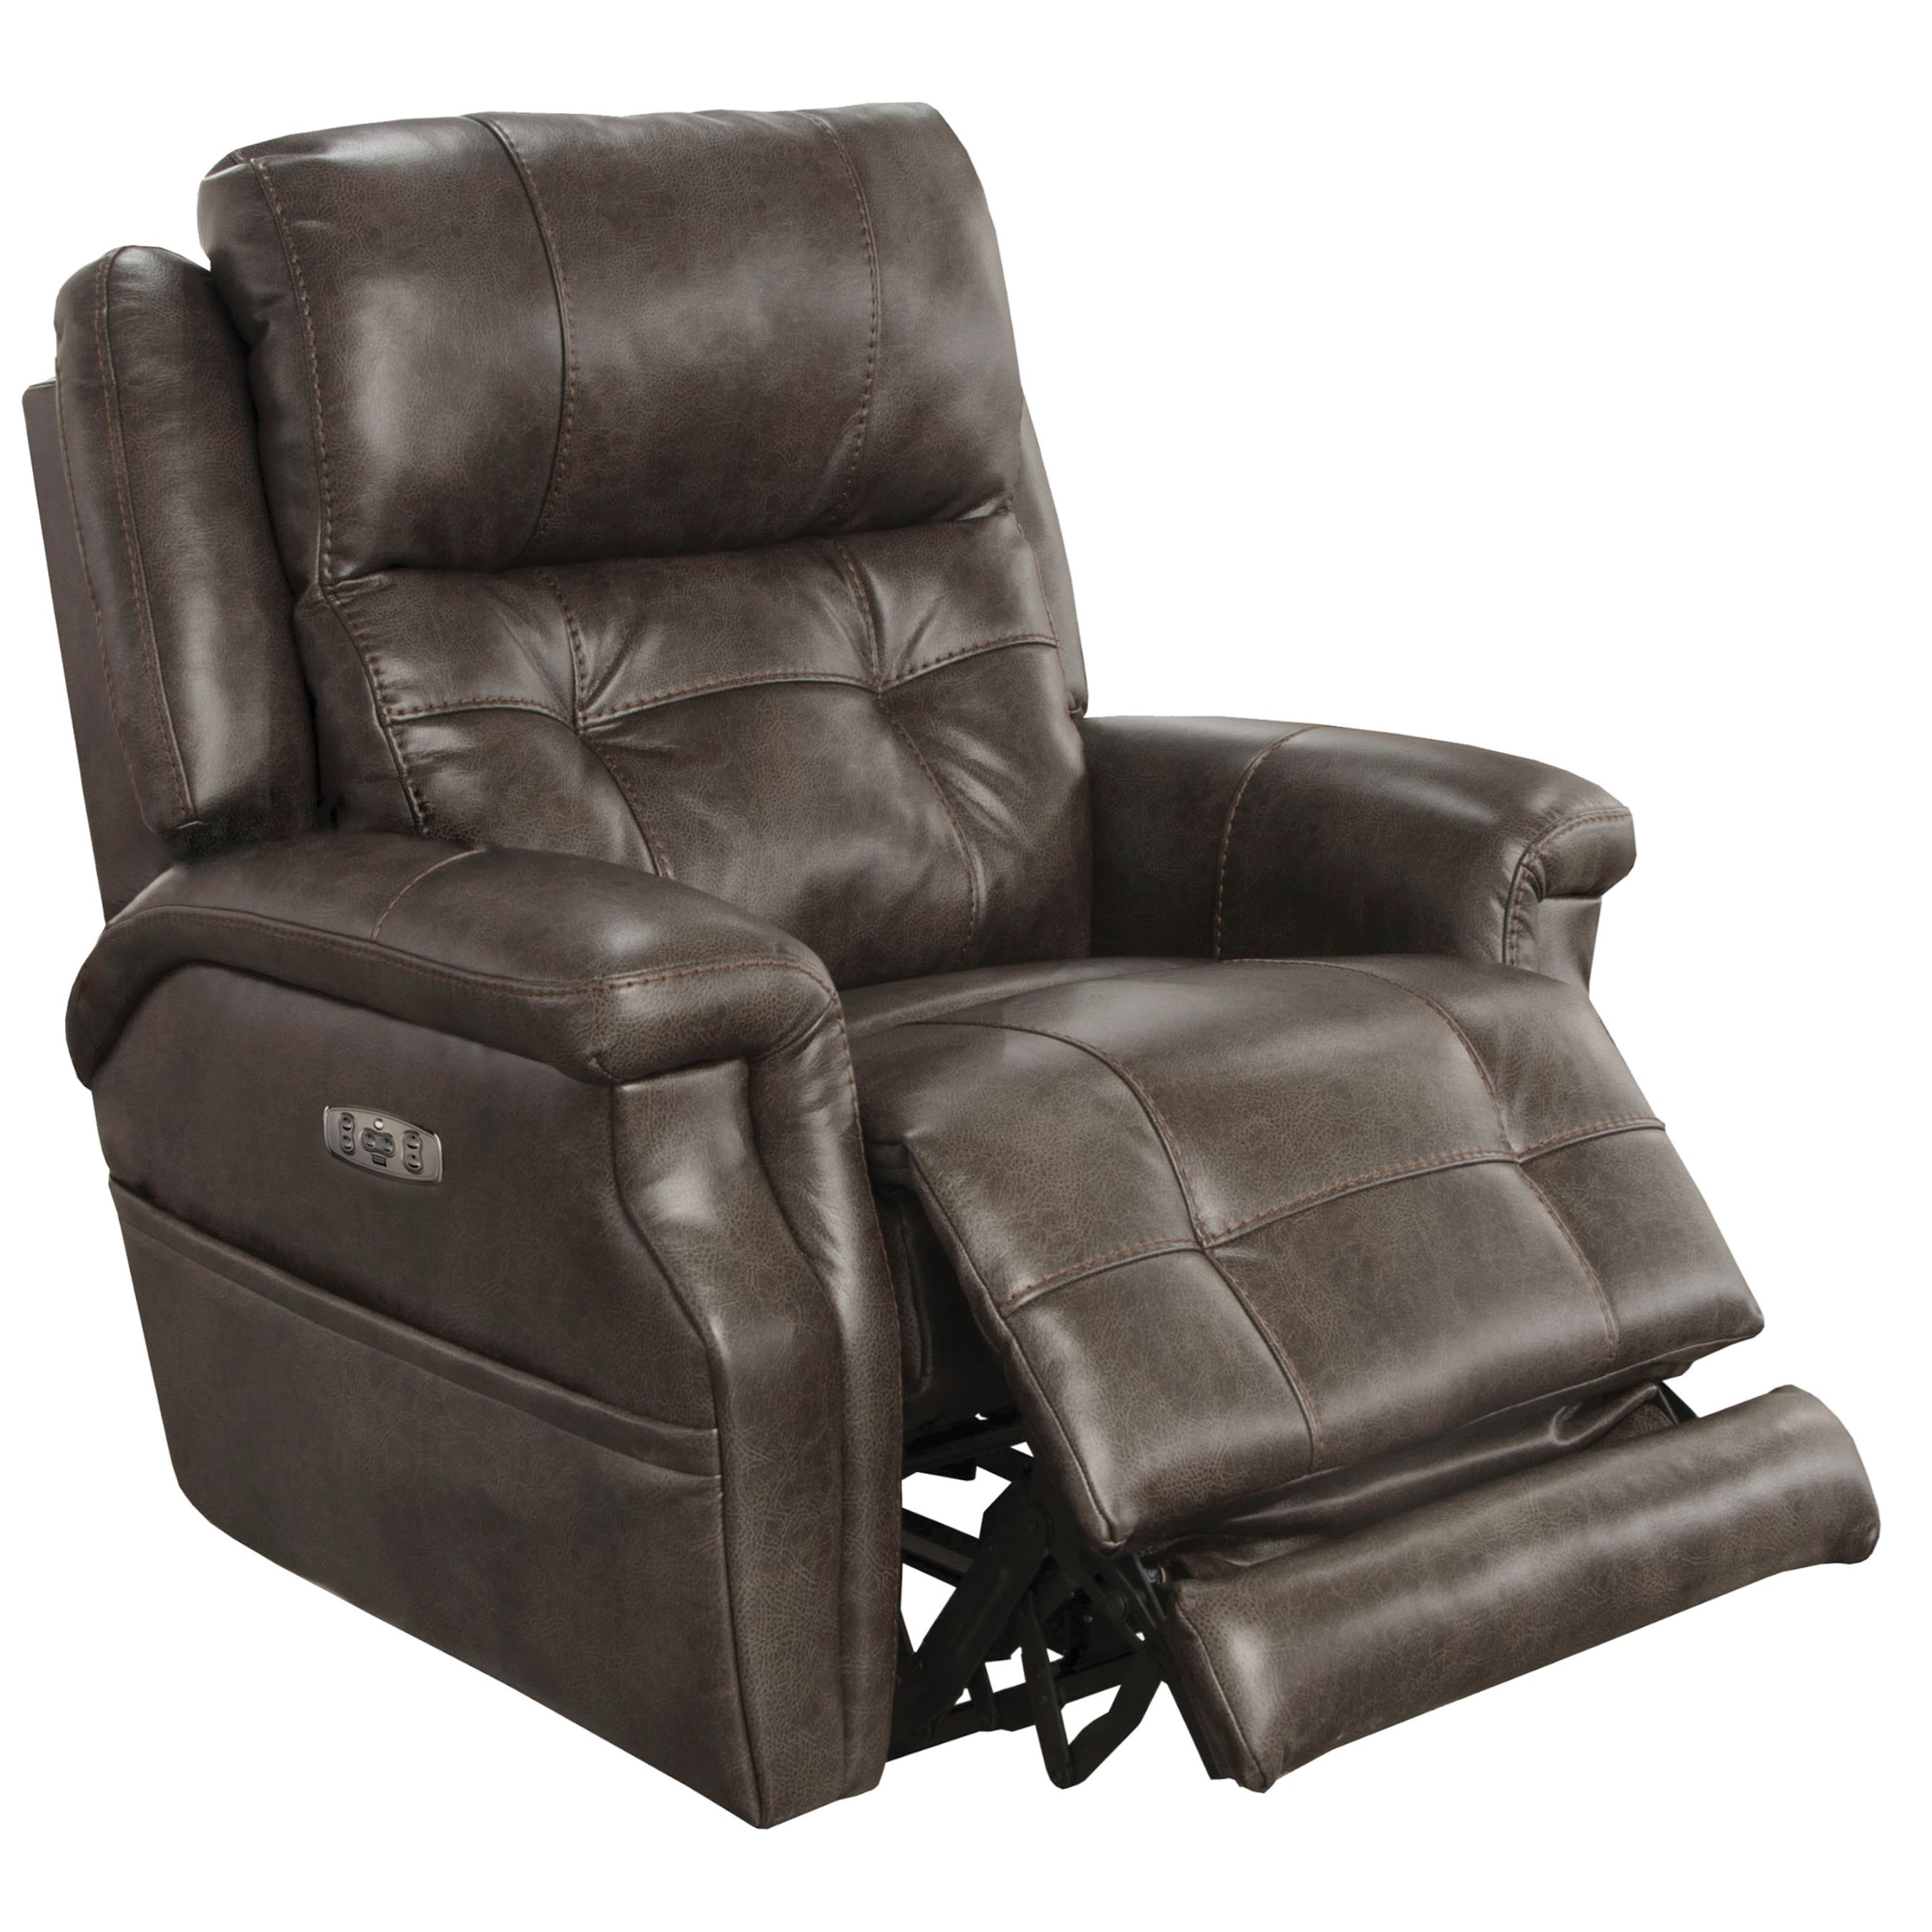 lay flat recliner chairs rubber feet for metal chair legs catnapper motion and recliners kepley power headrest with extended ottoman